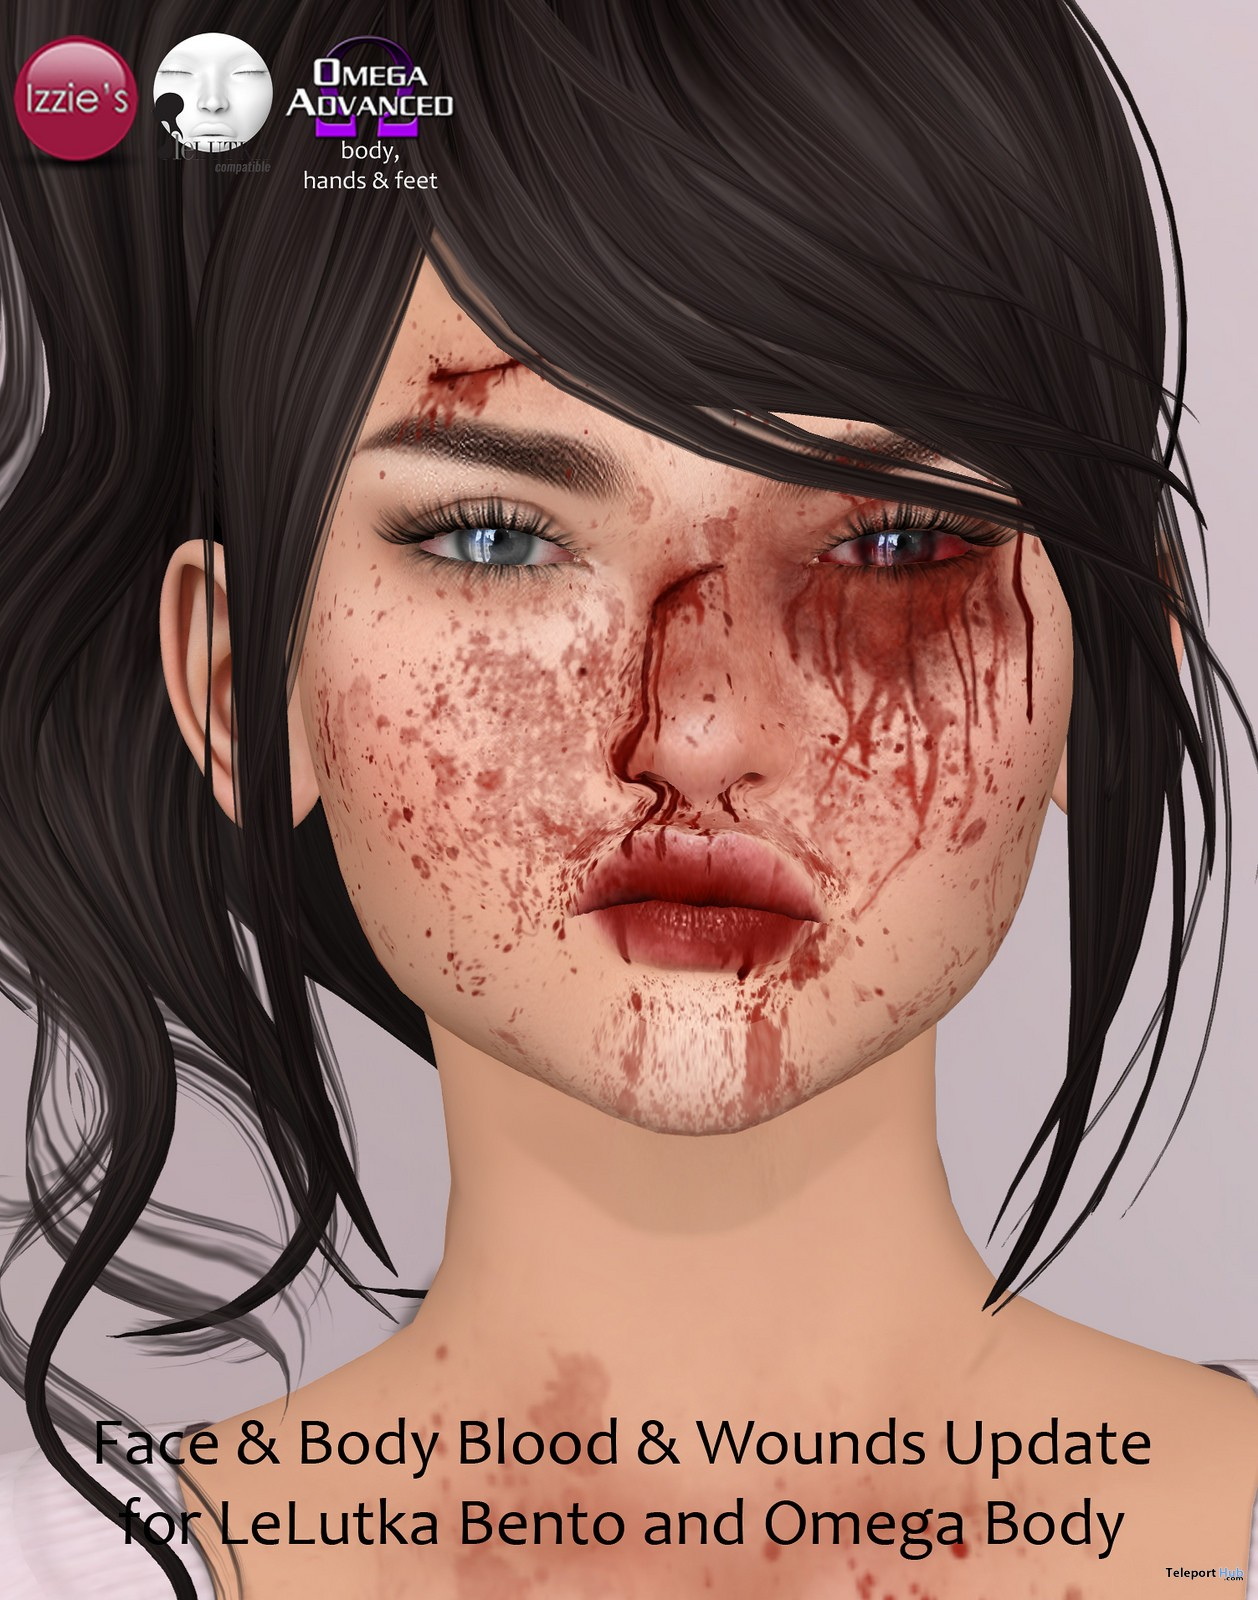 Face ,Body Blood & Wounds Free Update Gift by Izzie's - Teleport Hub - teleporthub.com